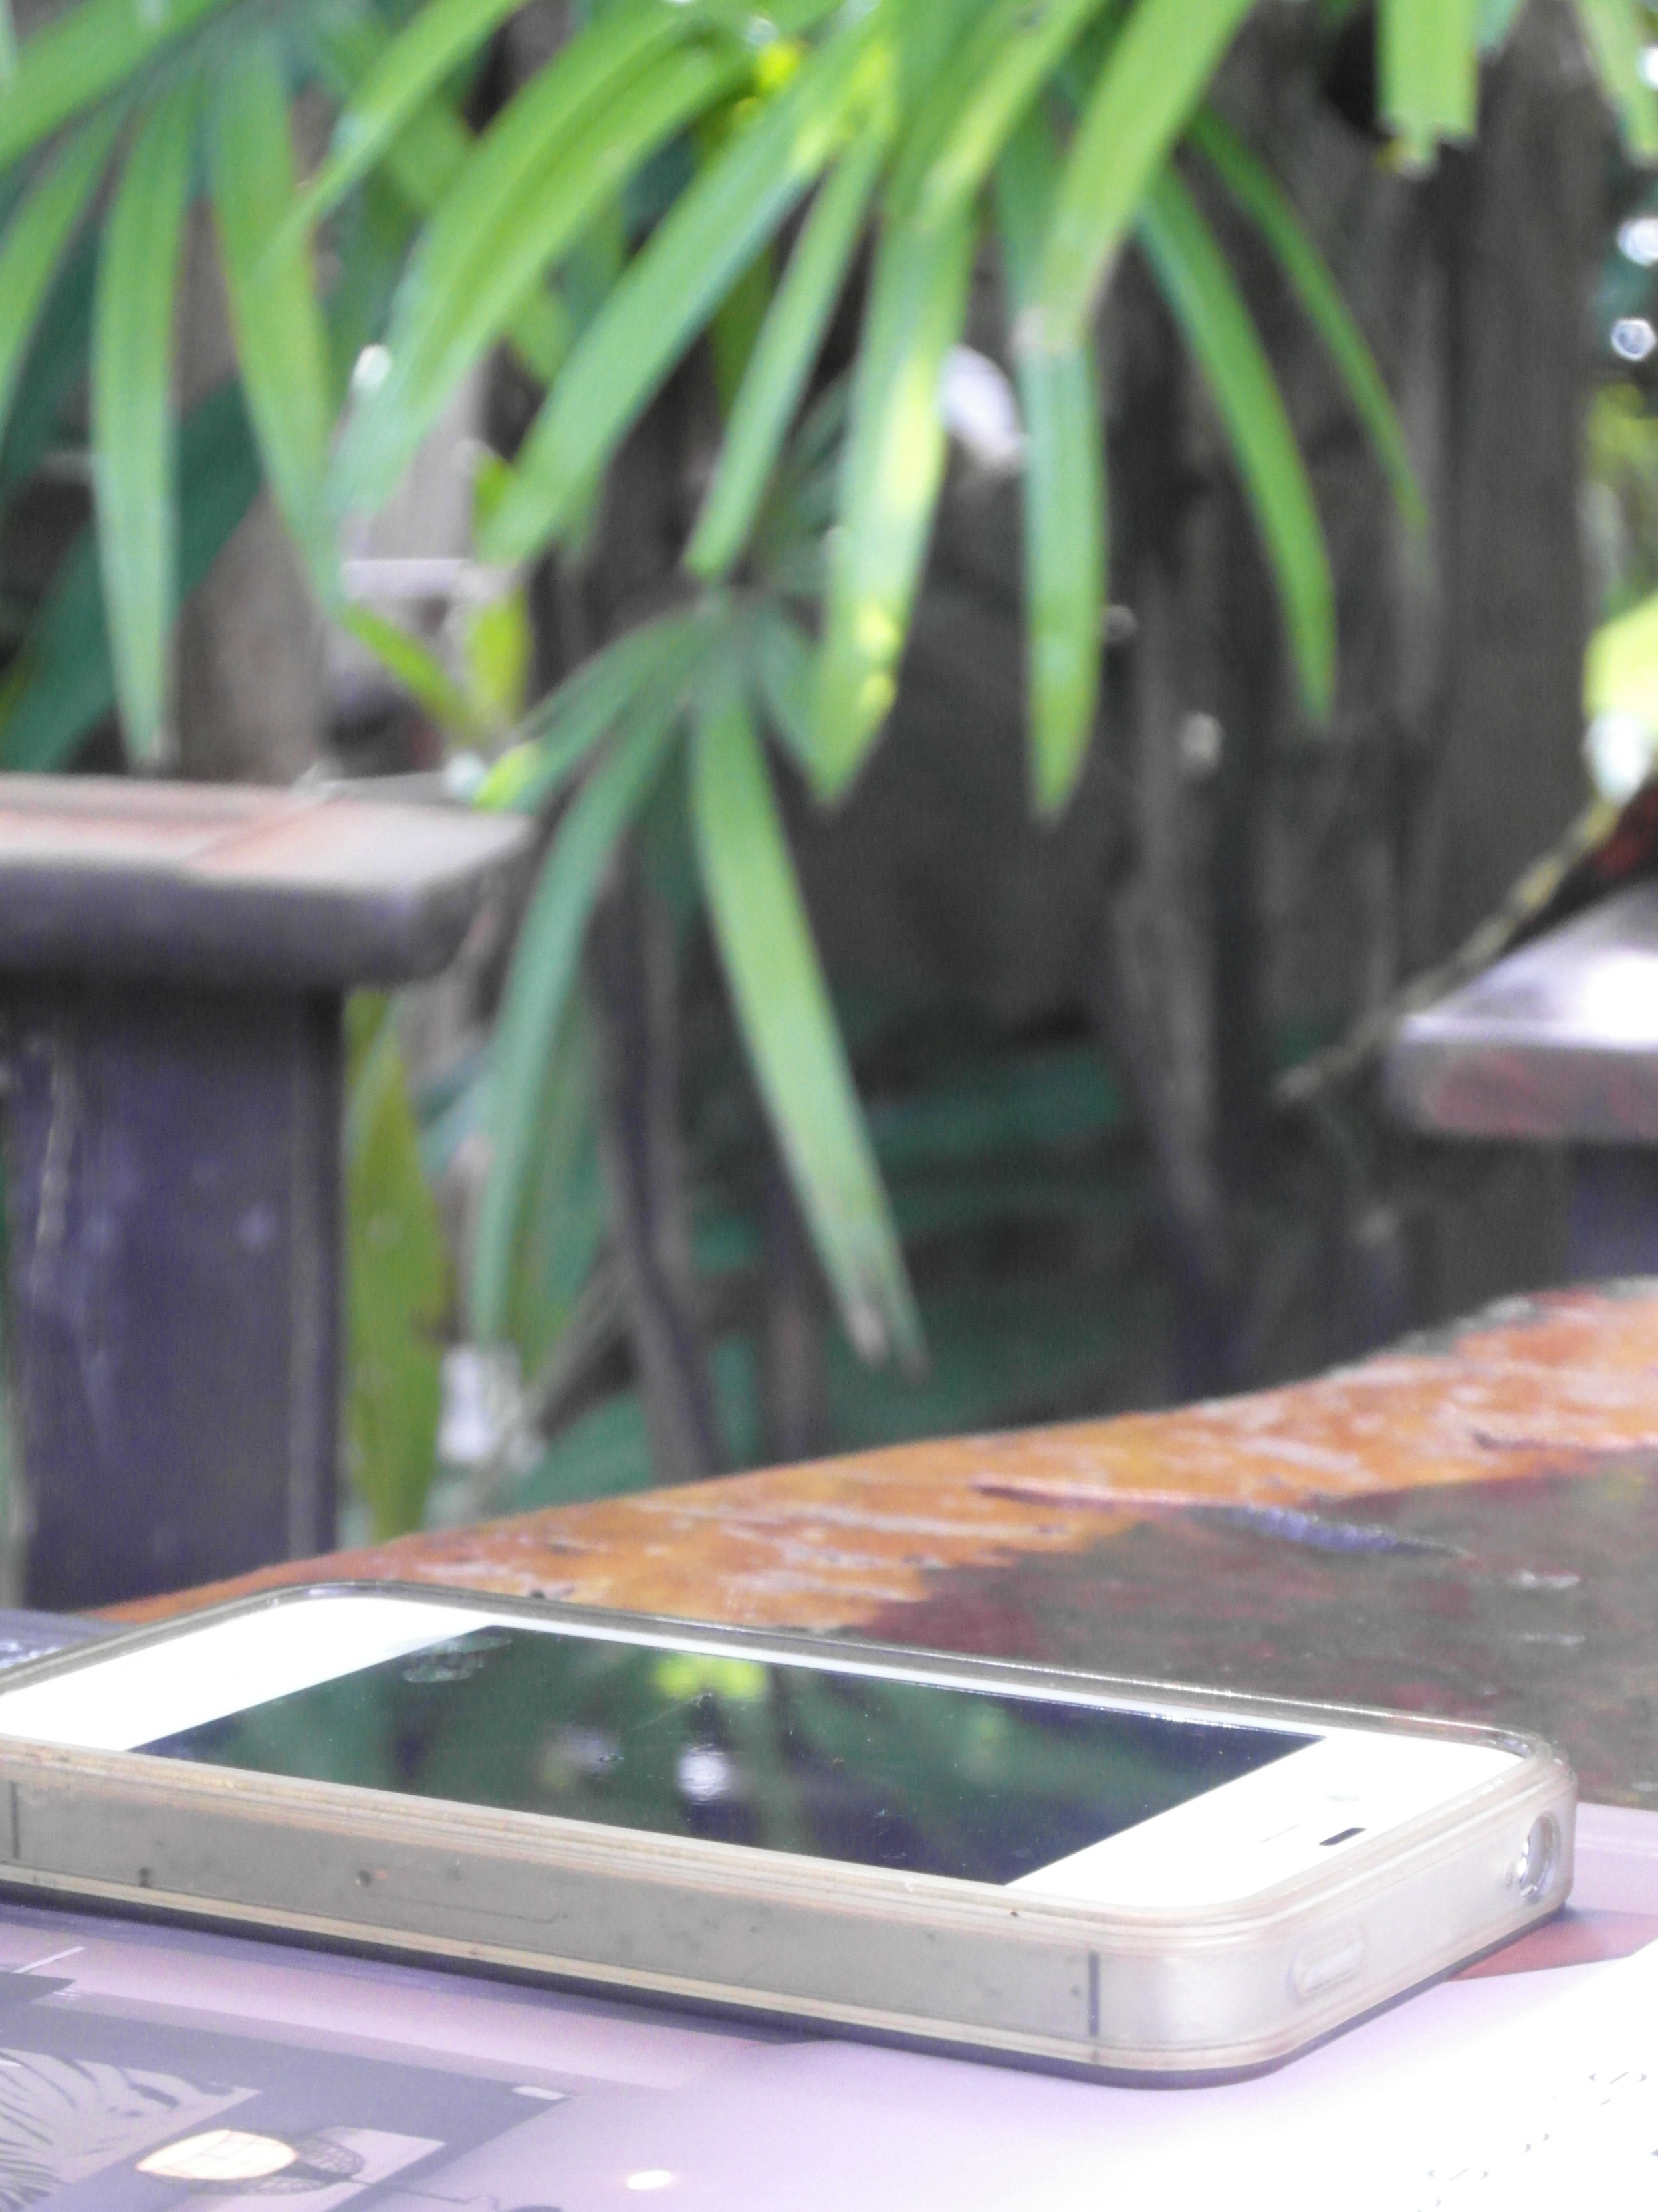 Mobile Phone (Cellphone) Outside, Cellphone, Telephone, Technology, Table, HQ Photo